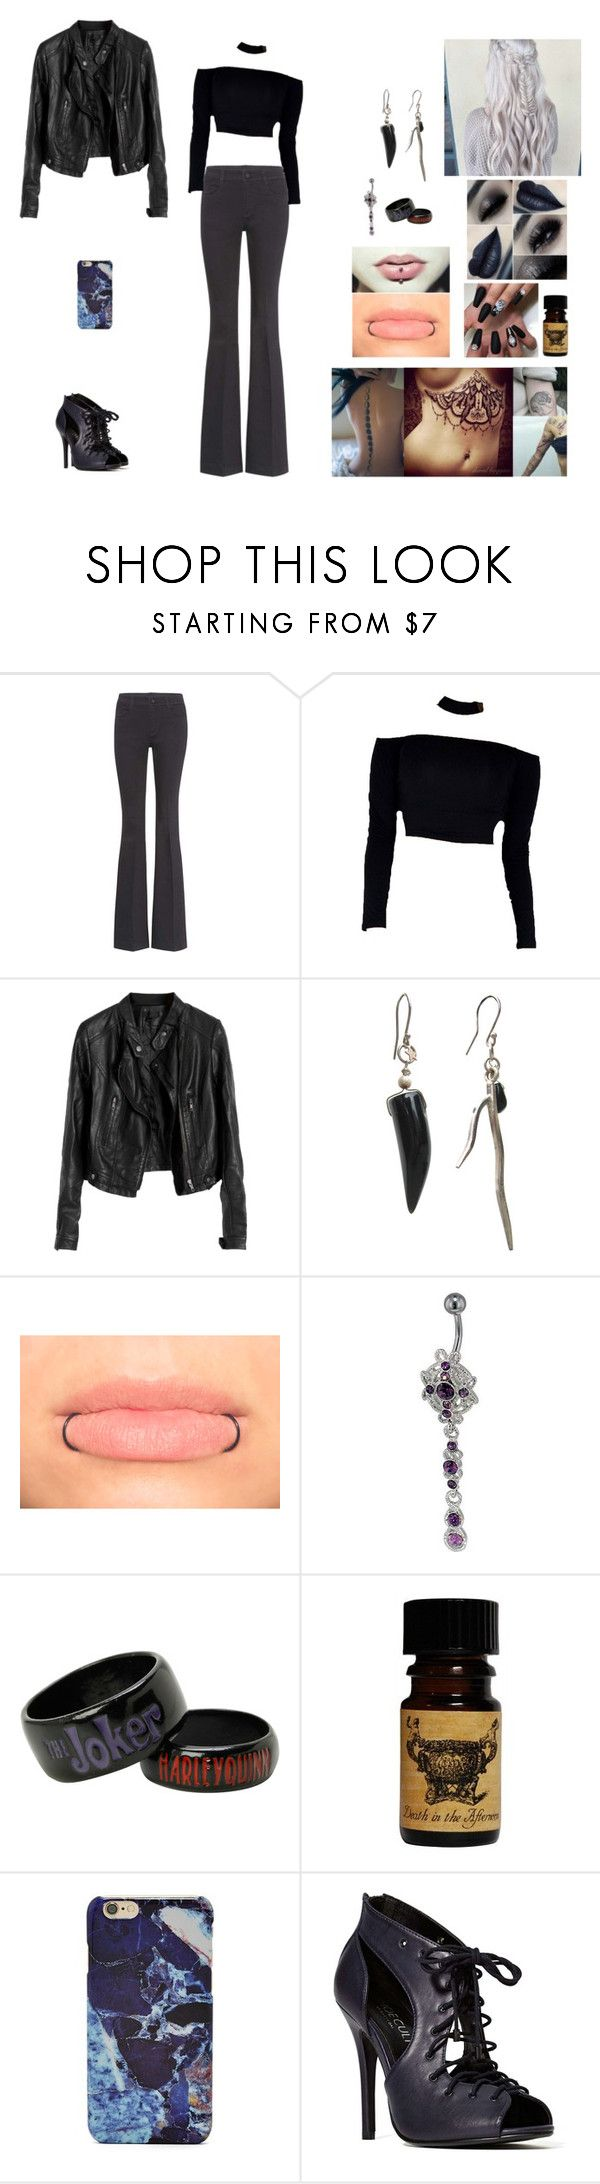 """Horror #1"" by jazmine-bowman on Polyvore featuring STELLA McCARTNEY, Hayden-Harnett, Hot Topic, Forever 21 and Shoe Cult"